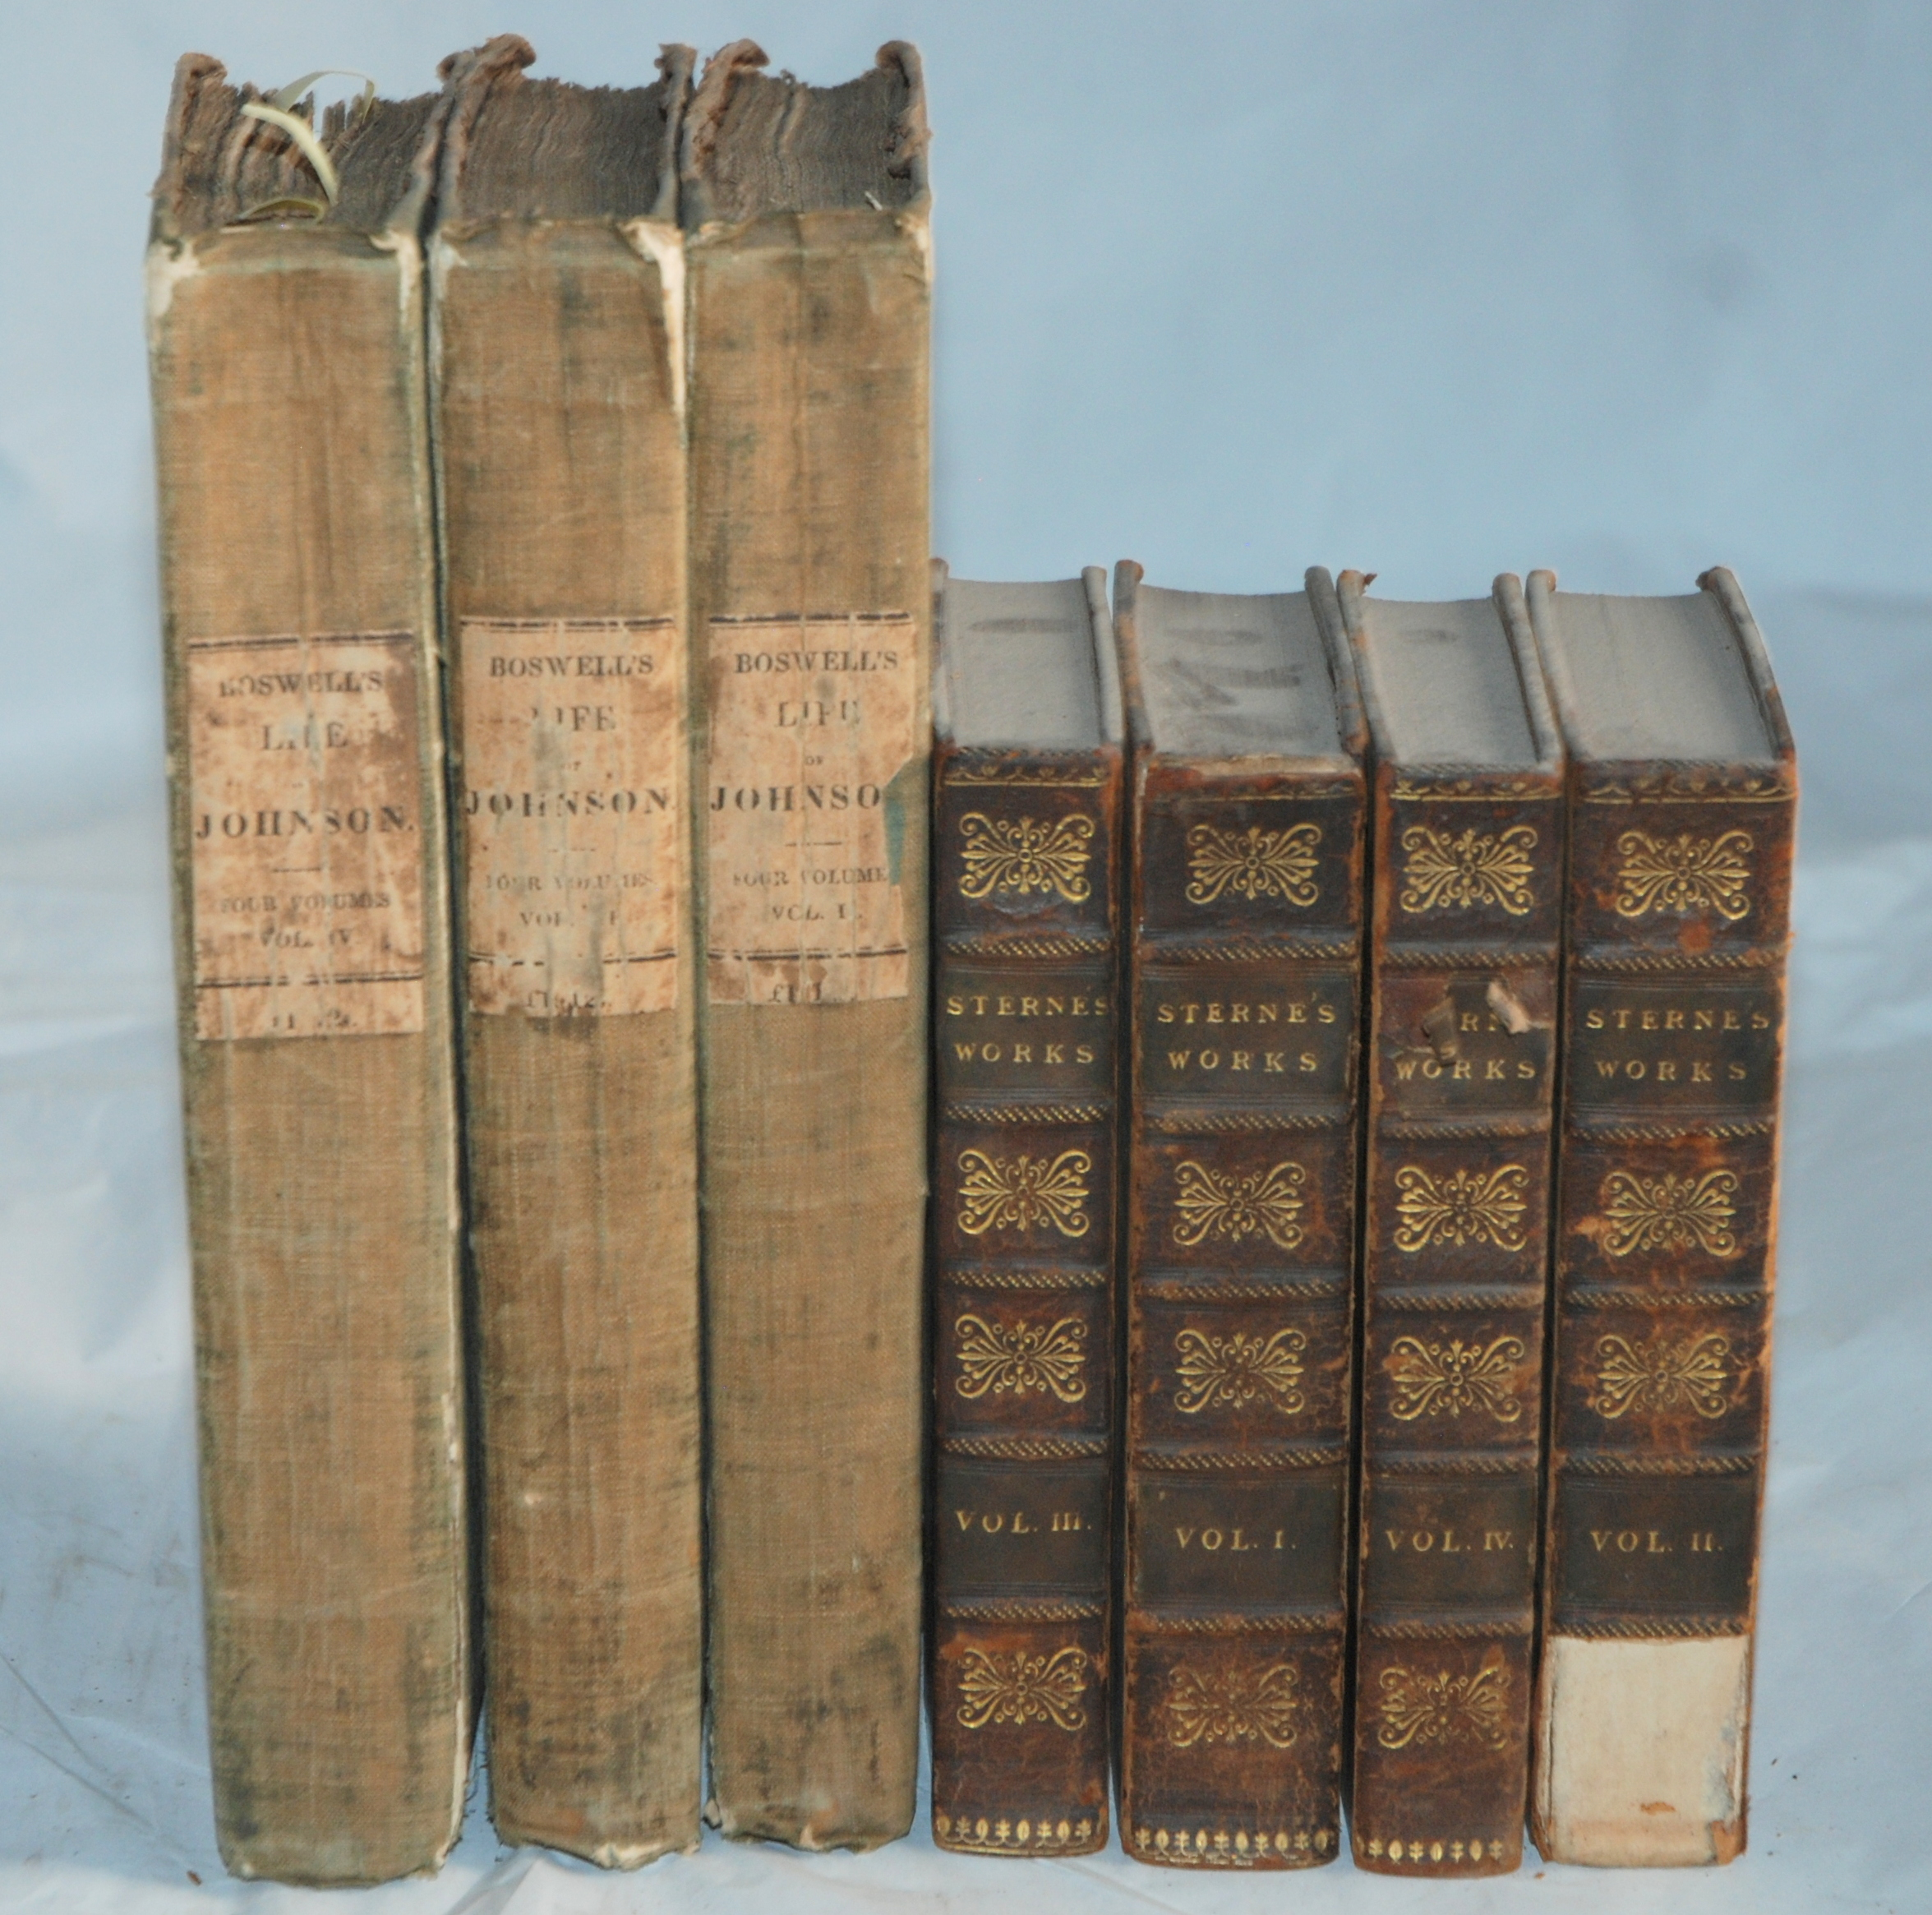 BOSWELLS LIFE OF JOHNSON 3 vols, London, 1824, The works of Henry Fielding, 9 vols, Laurence Sterna,